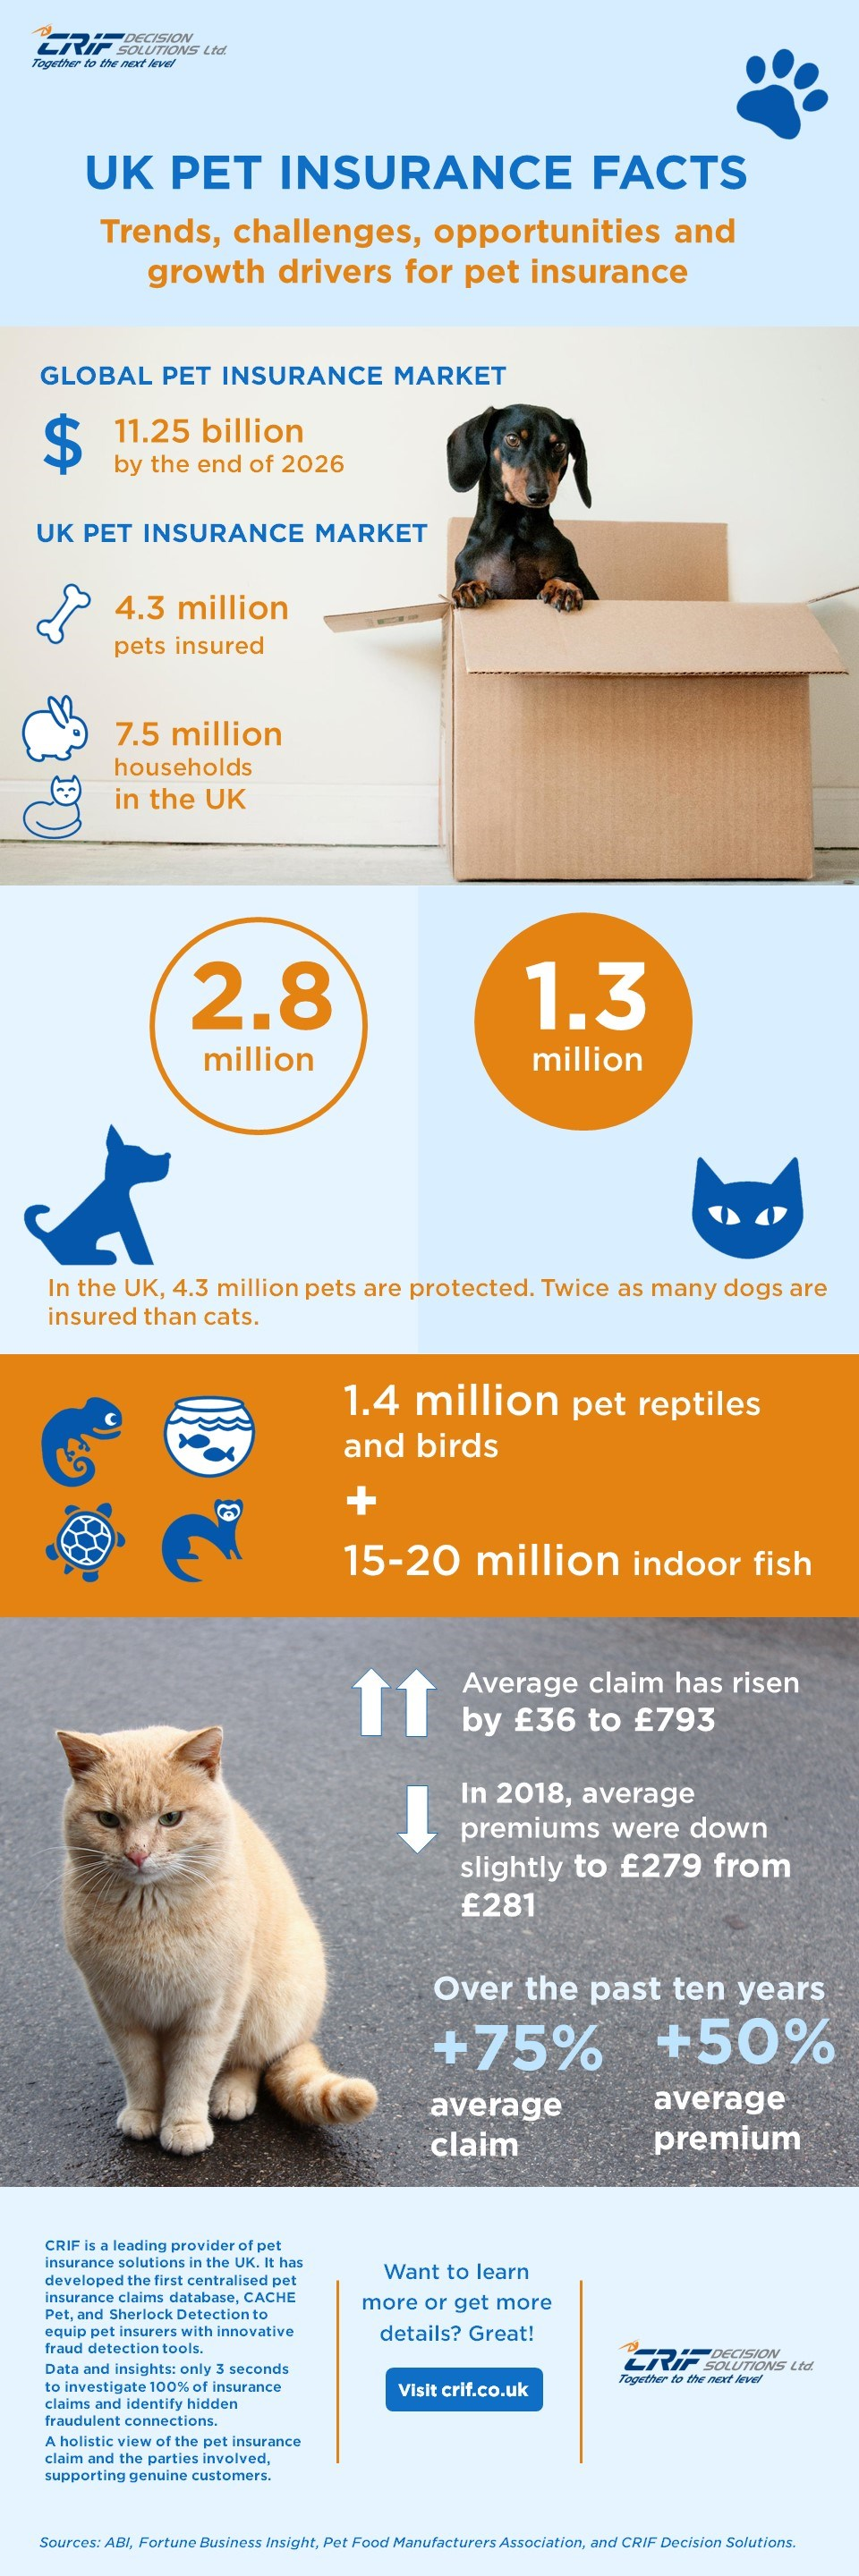 UK-pet-insurance-facts-infographic_CRIF